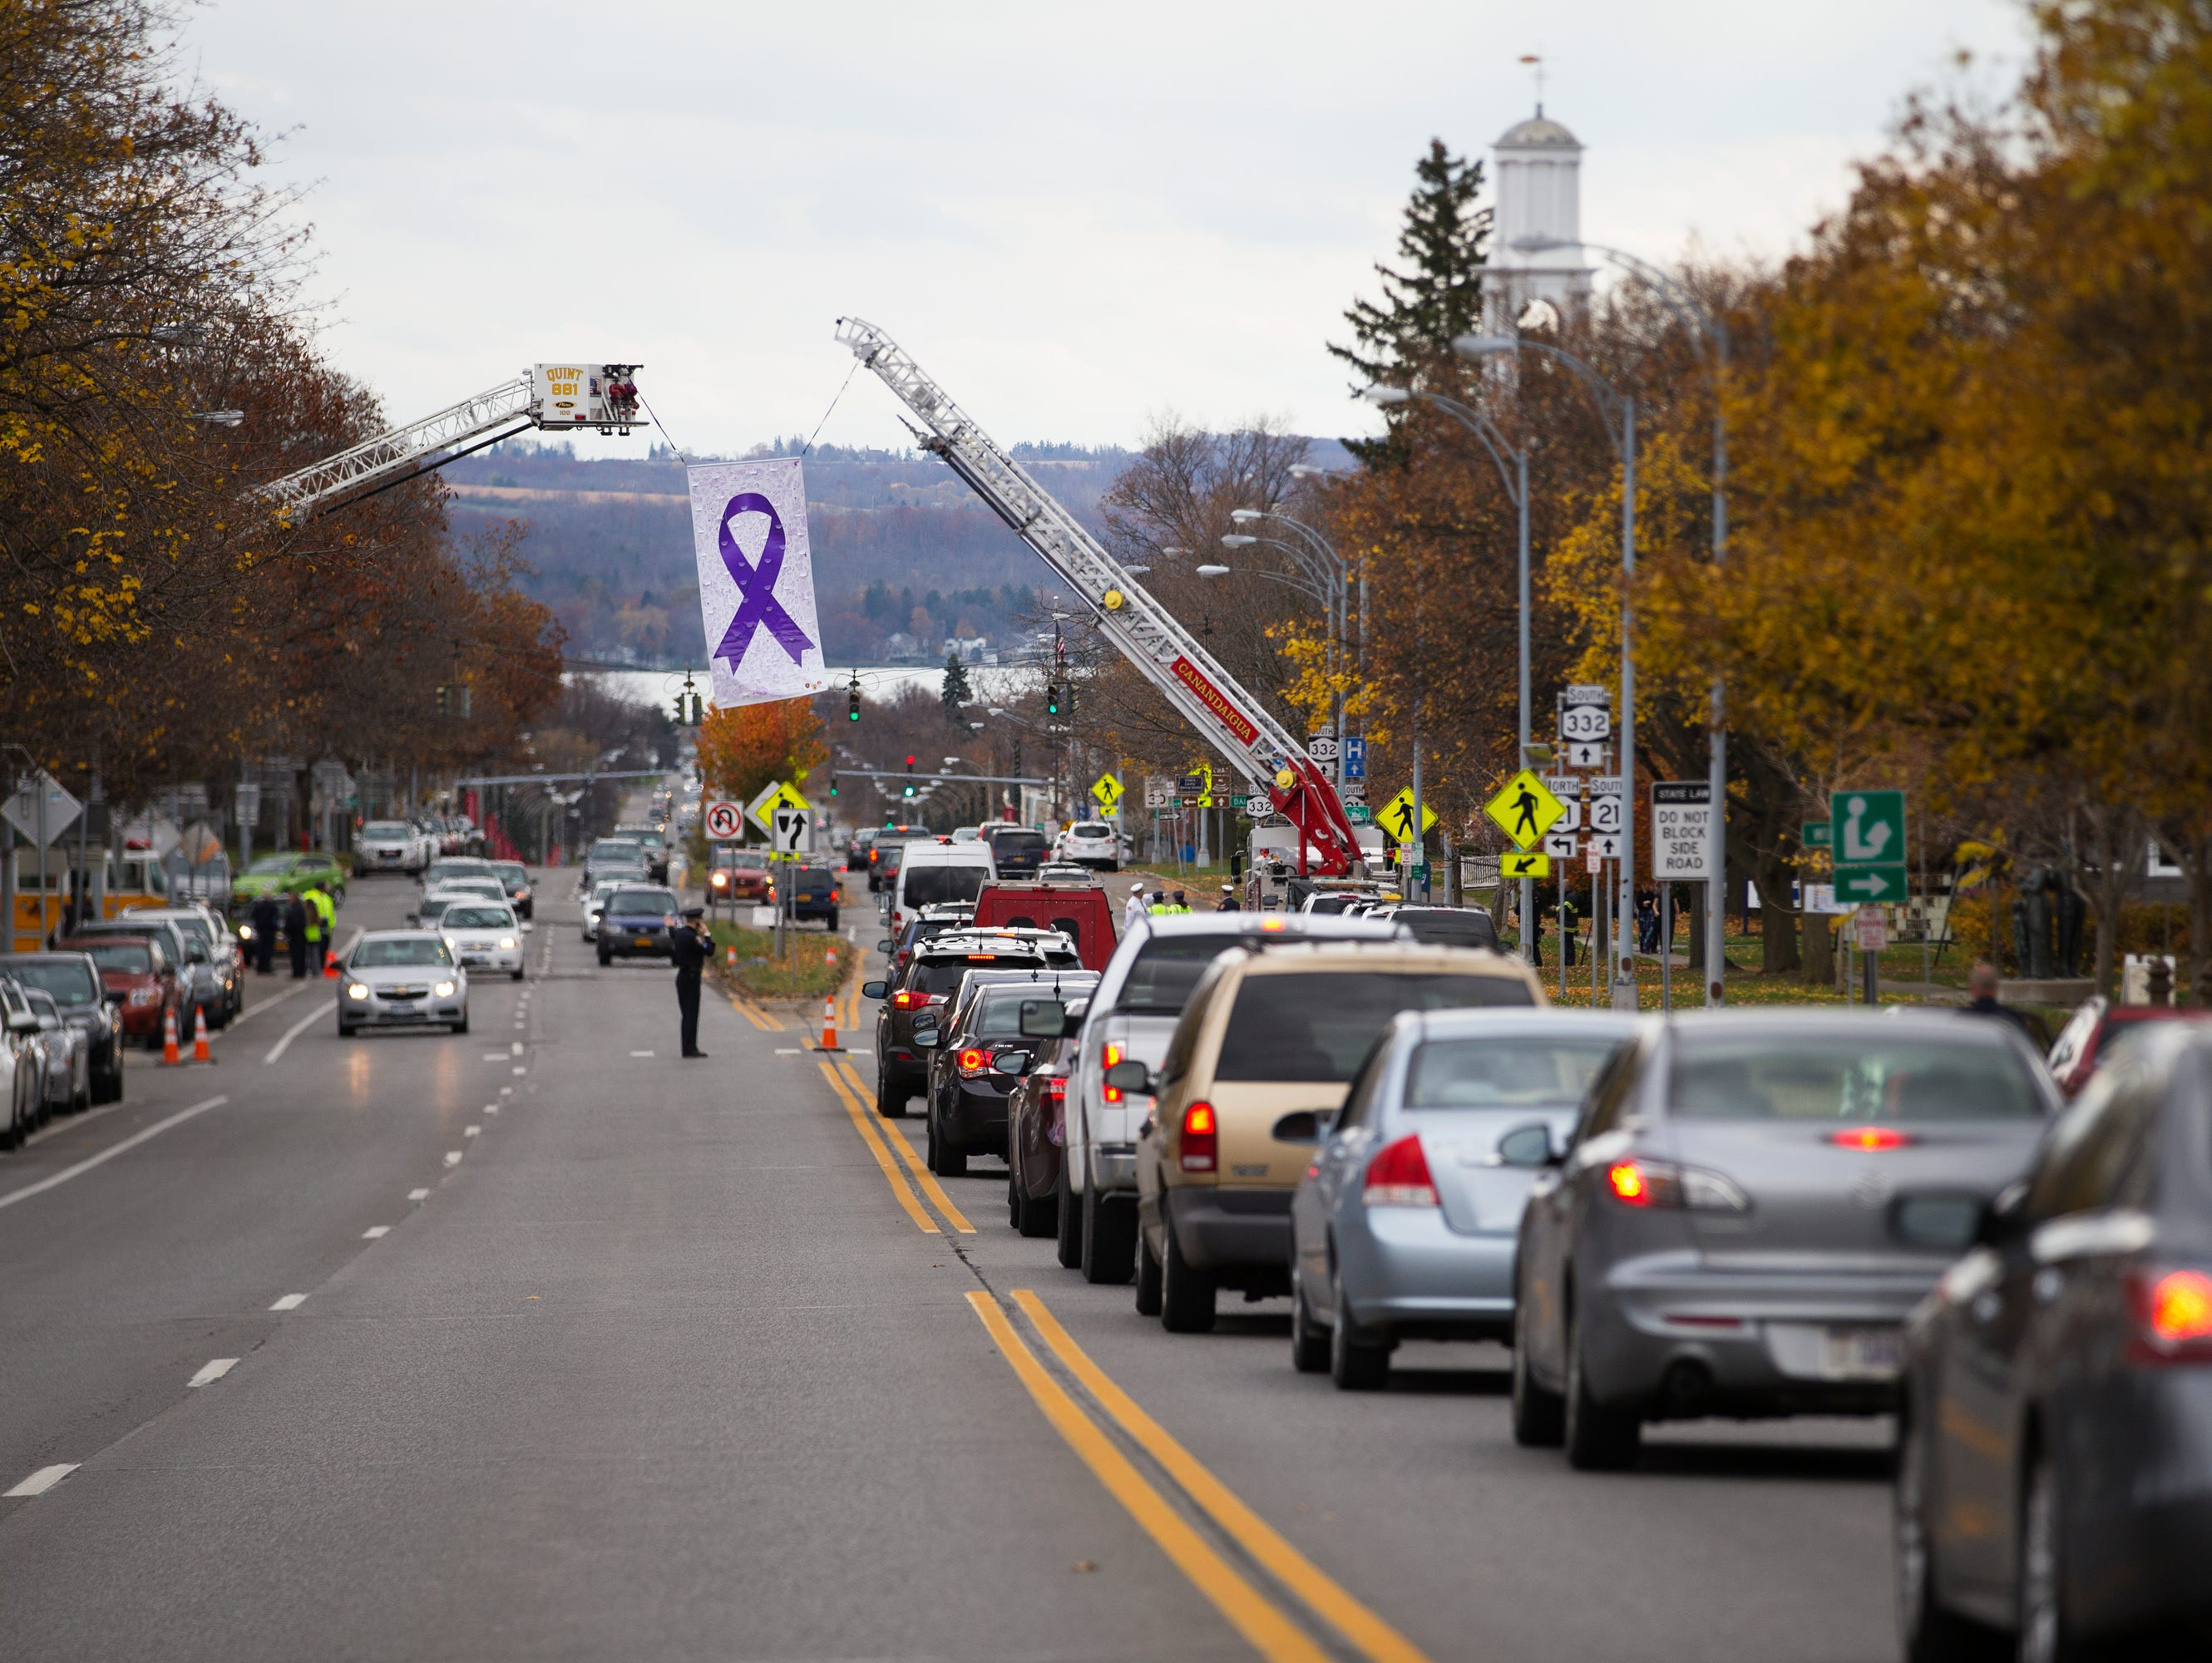 Traffic is backed up leading into downtown Canandaigua prior to Courtney Wagner's funeral on Saturday, November 7, 2015.